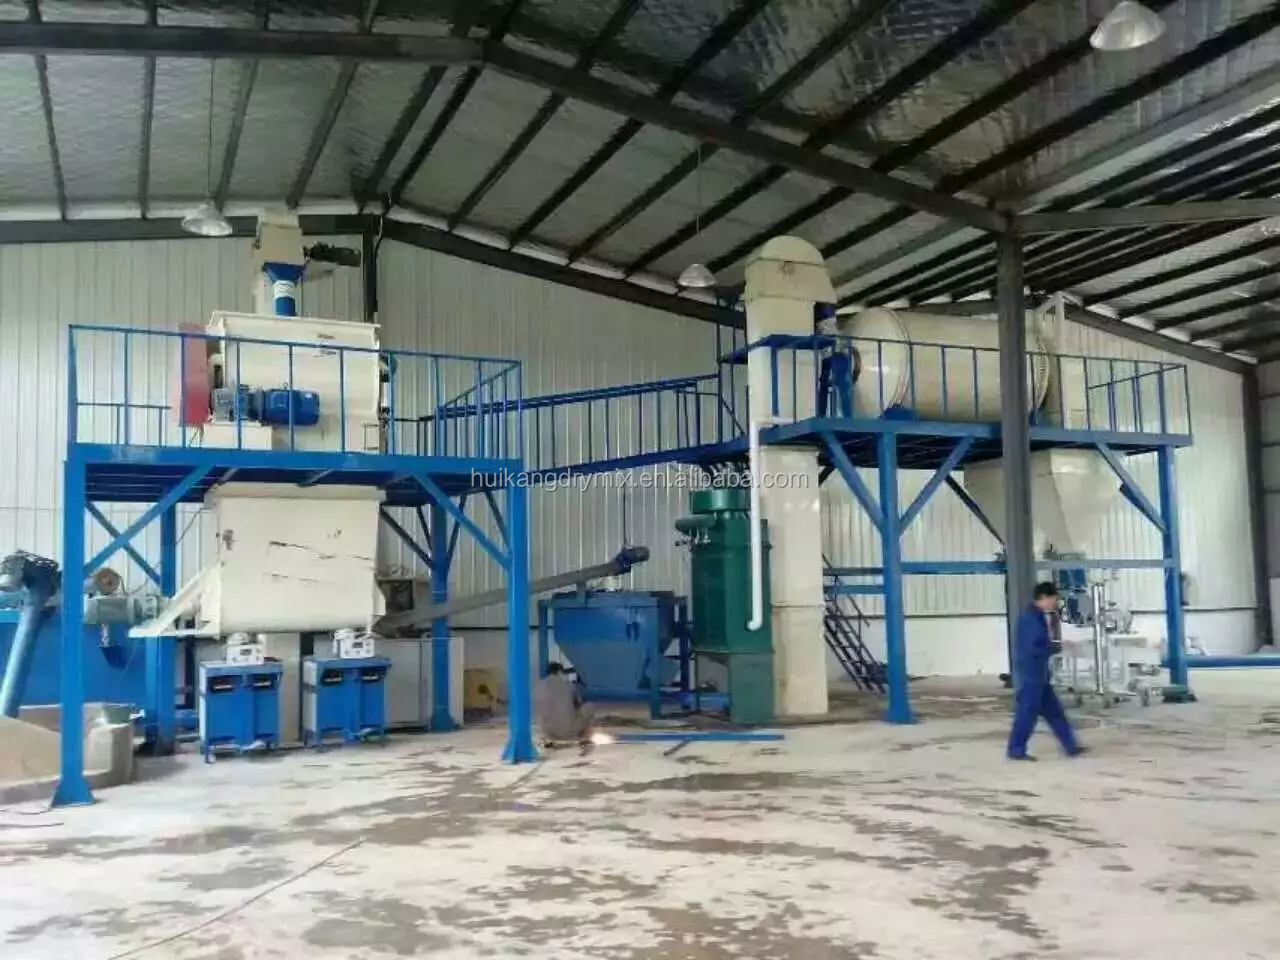 Big output dry mix cement sand mortar blender mixer/ polymer mortar ribbon blender mixer for sale in Thailand